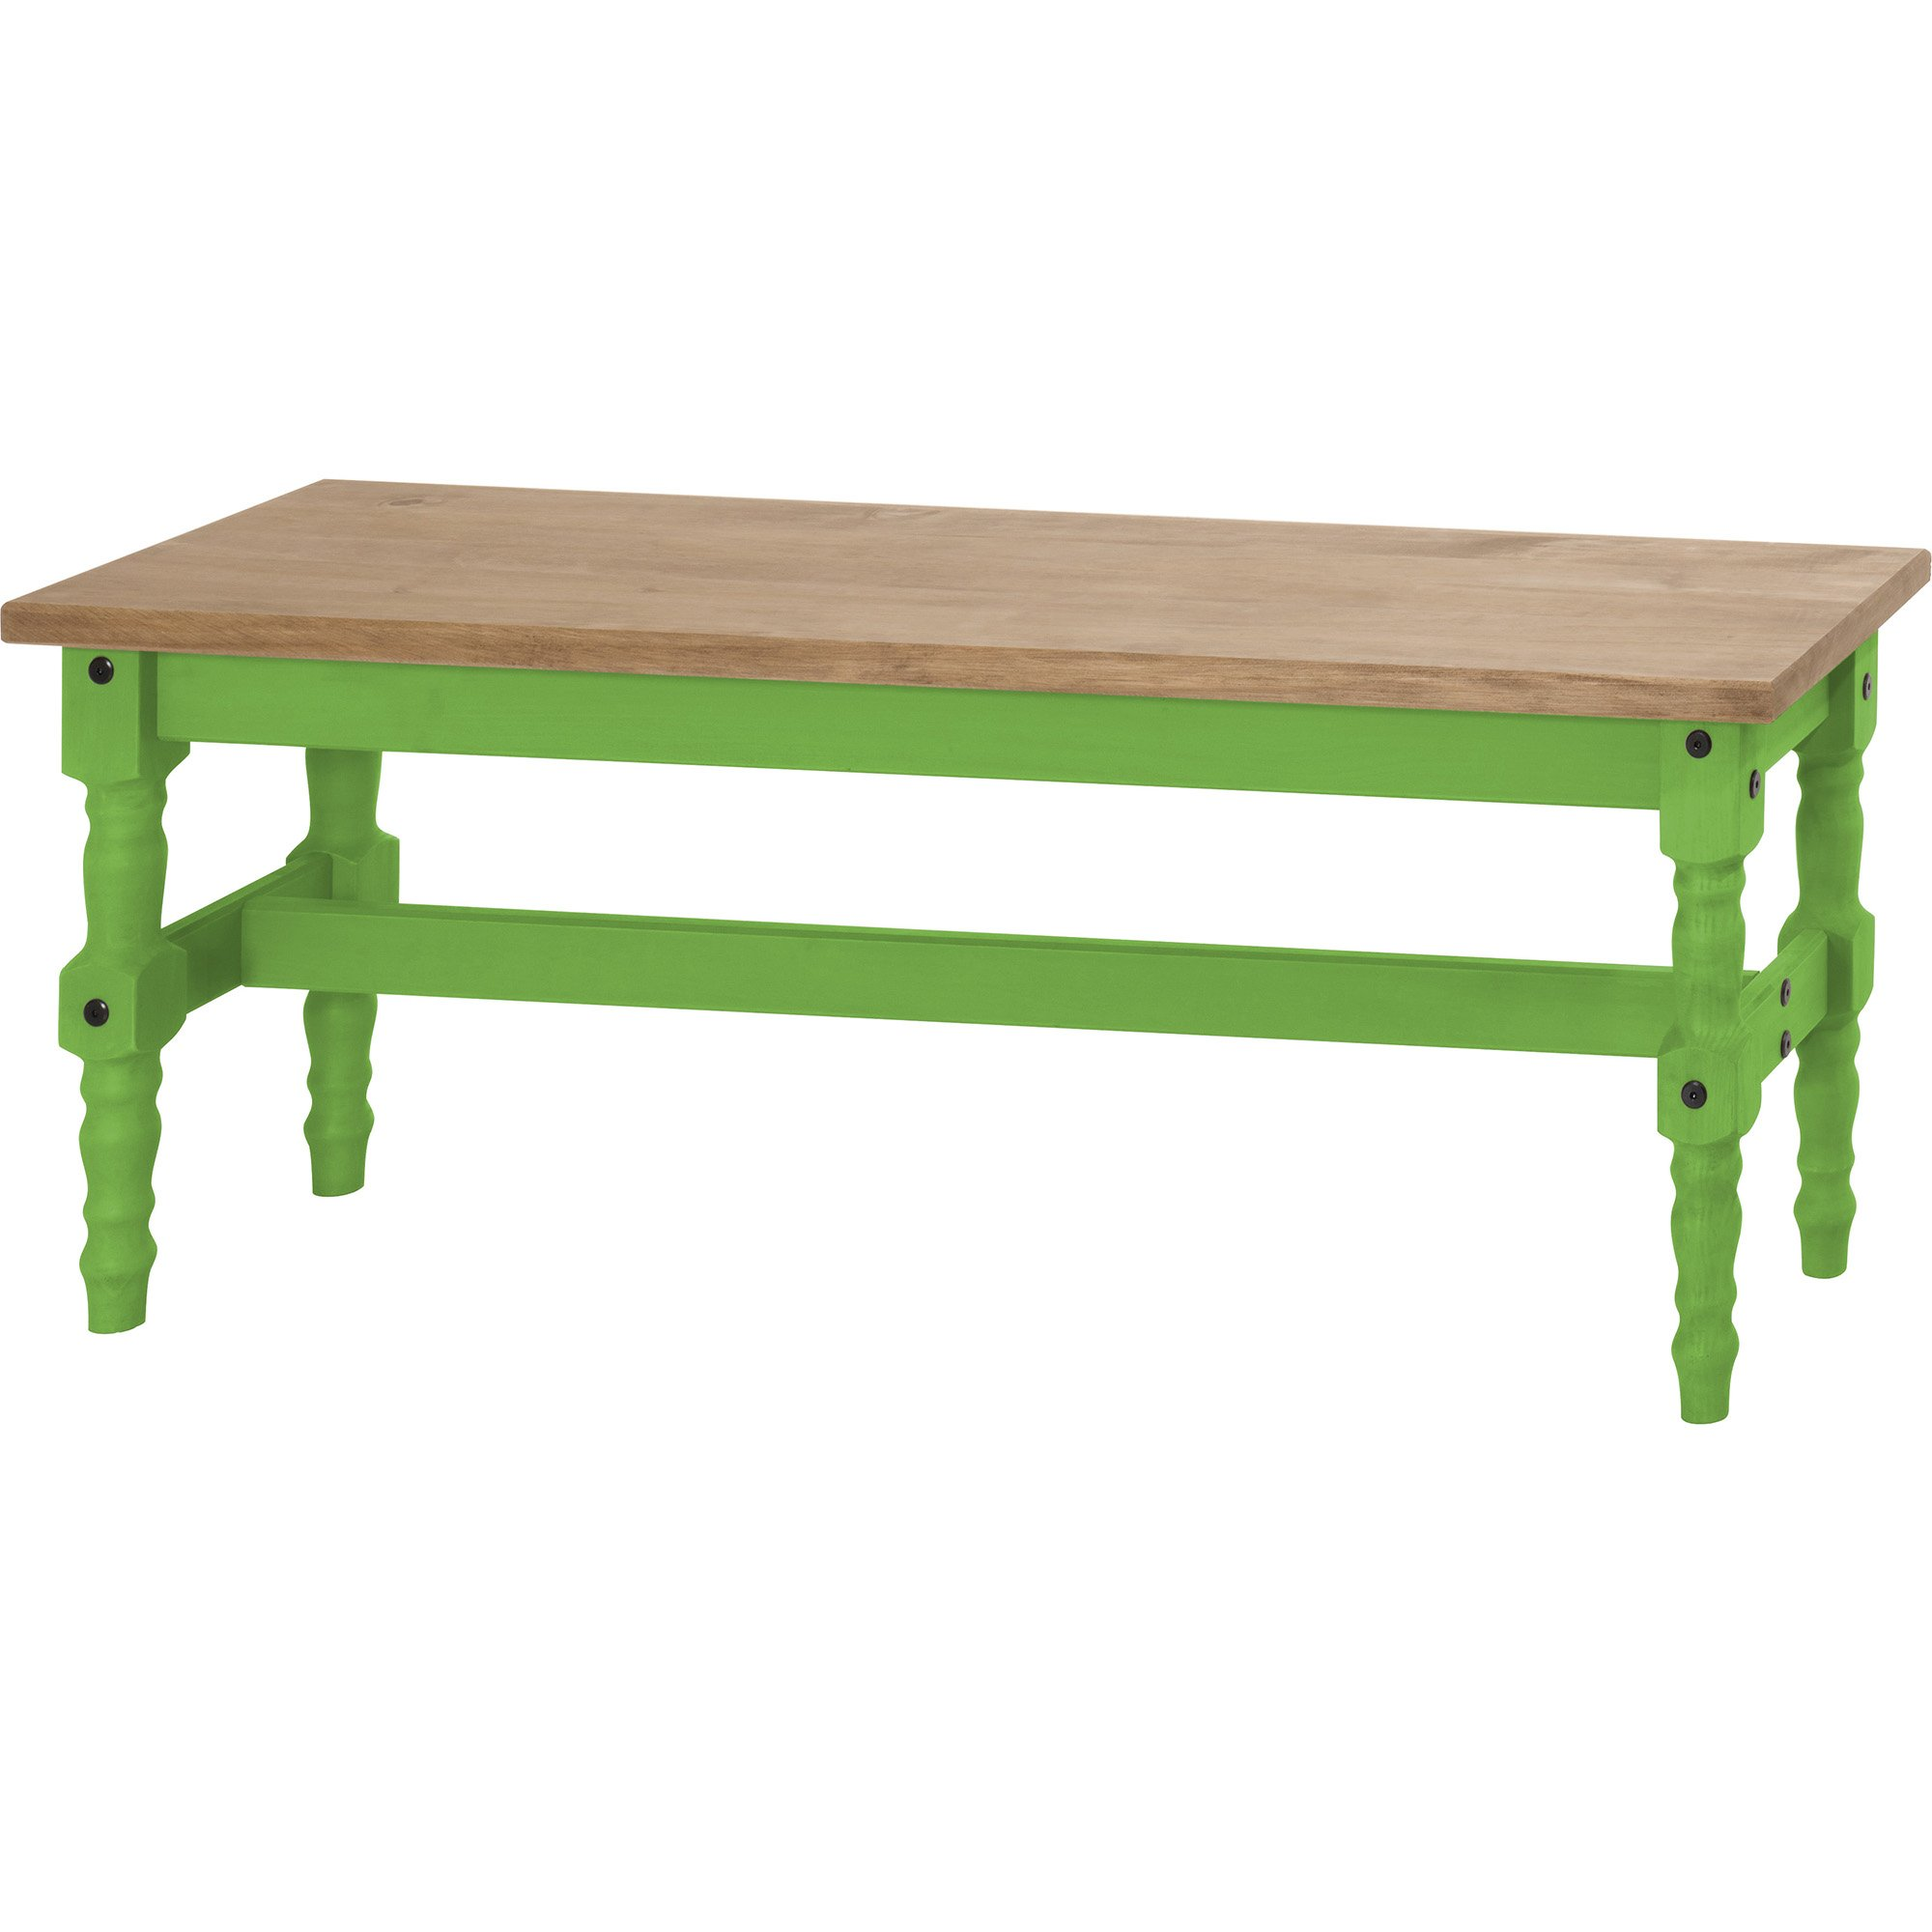 Manhattan Comfort Jay Collection Traditional Wooden Dining Table Bench With Trim Finish, Green/Wood